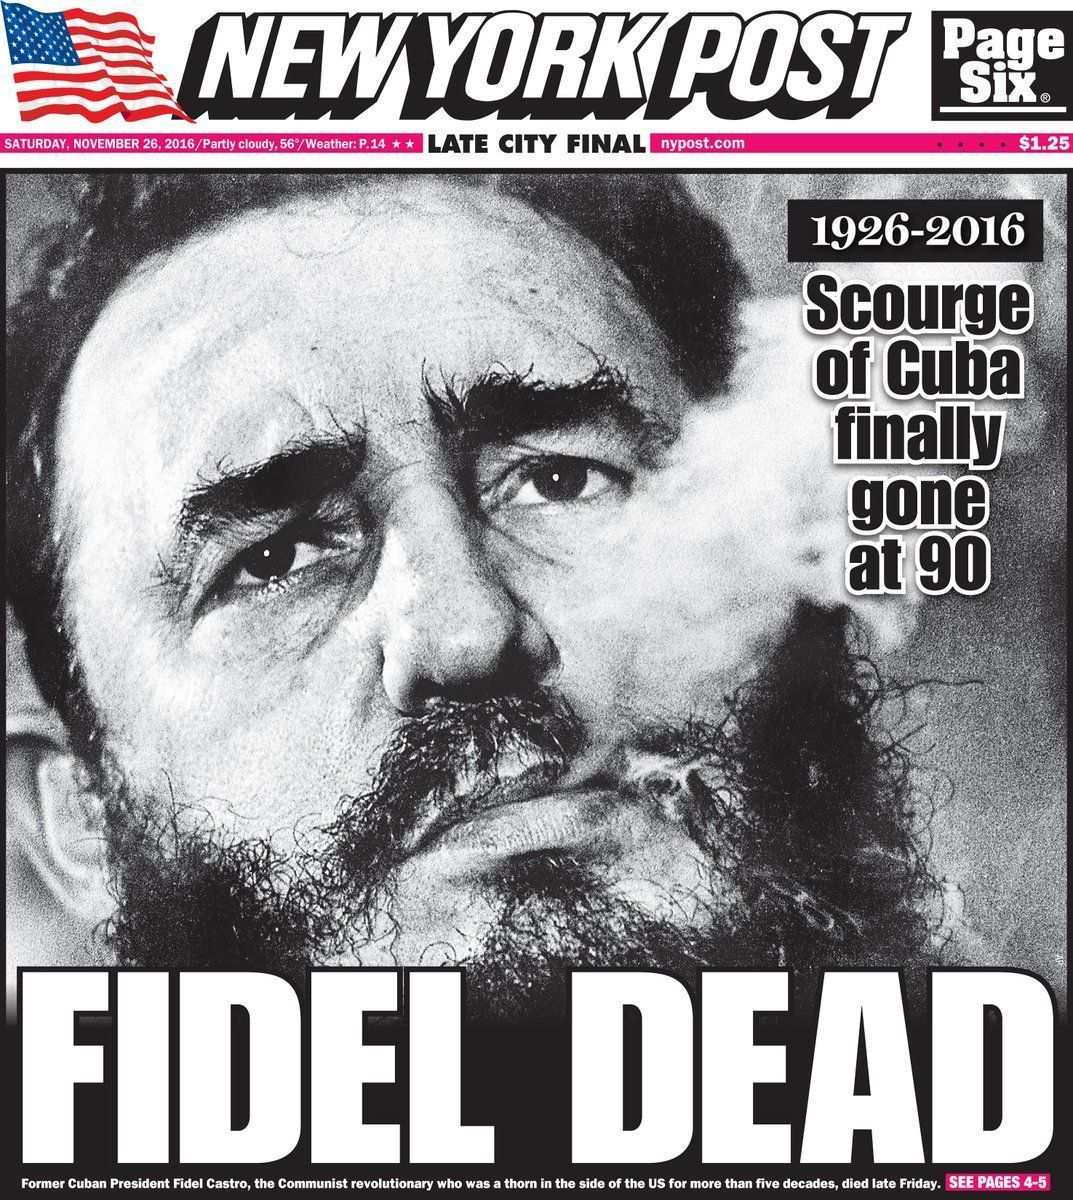 'The old man is dead': Fidel Castro's death sparks celebrations on streets of Miami #cubanleader Contrasting reactions to the death of Cuban leader as world leaders pay tribute to an an 'iconic revolutionary leader' #cubanleader 'The old man is dead': Fidel Castro's death sparks celebrations on streets of Miami #cubanleader Contrasting reactions to the death of Cuban leader as world leaders pay tribute to an an 'iconic revolutionary leader' #cubanleader